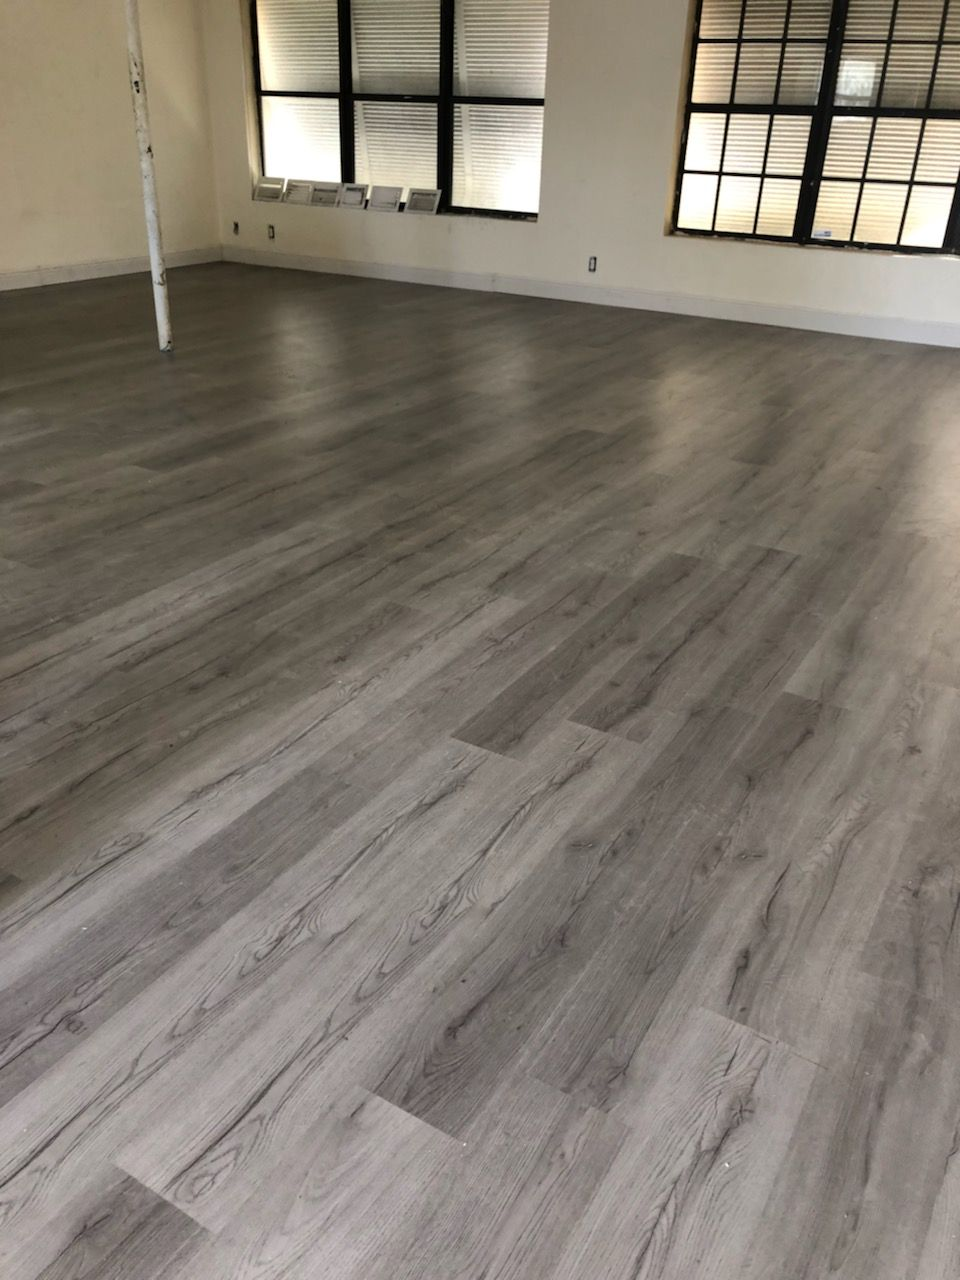 Vinyl floor installation in south Florida